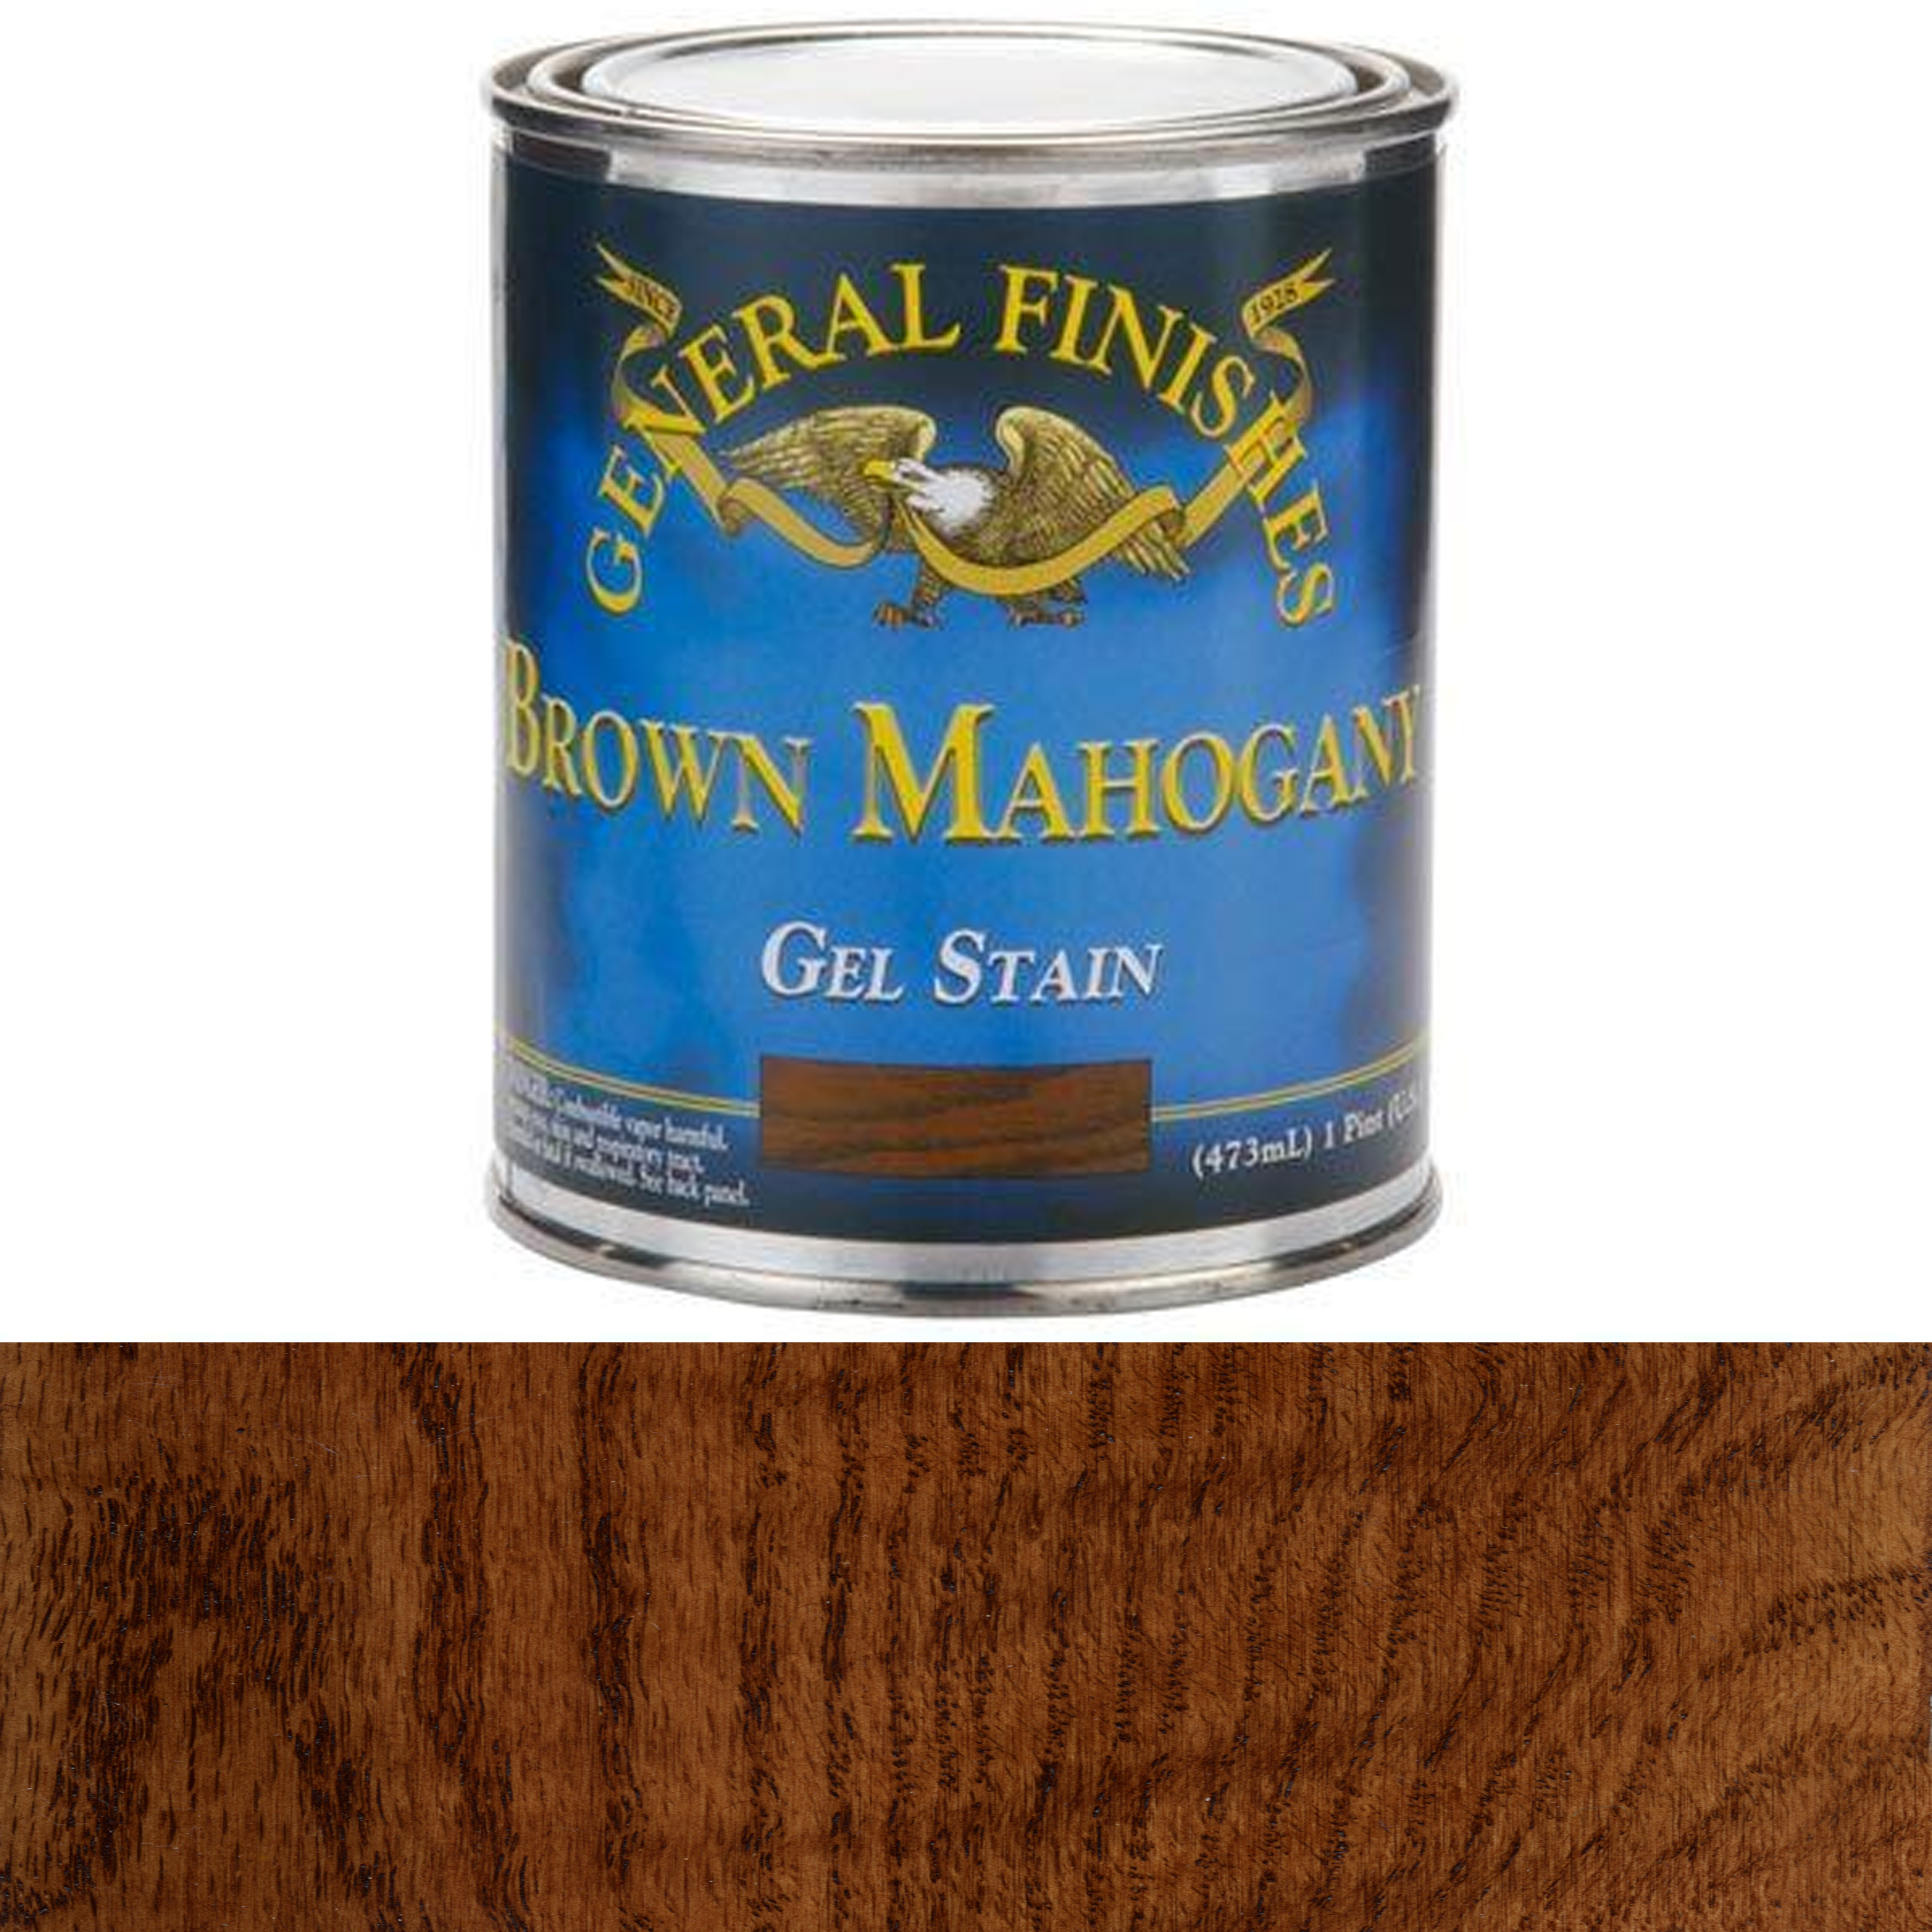 Brown Mahogany Gel Stain, Pint